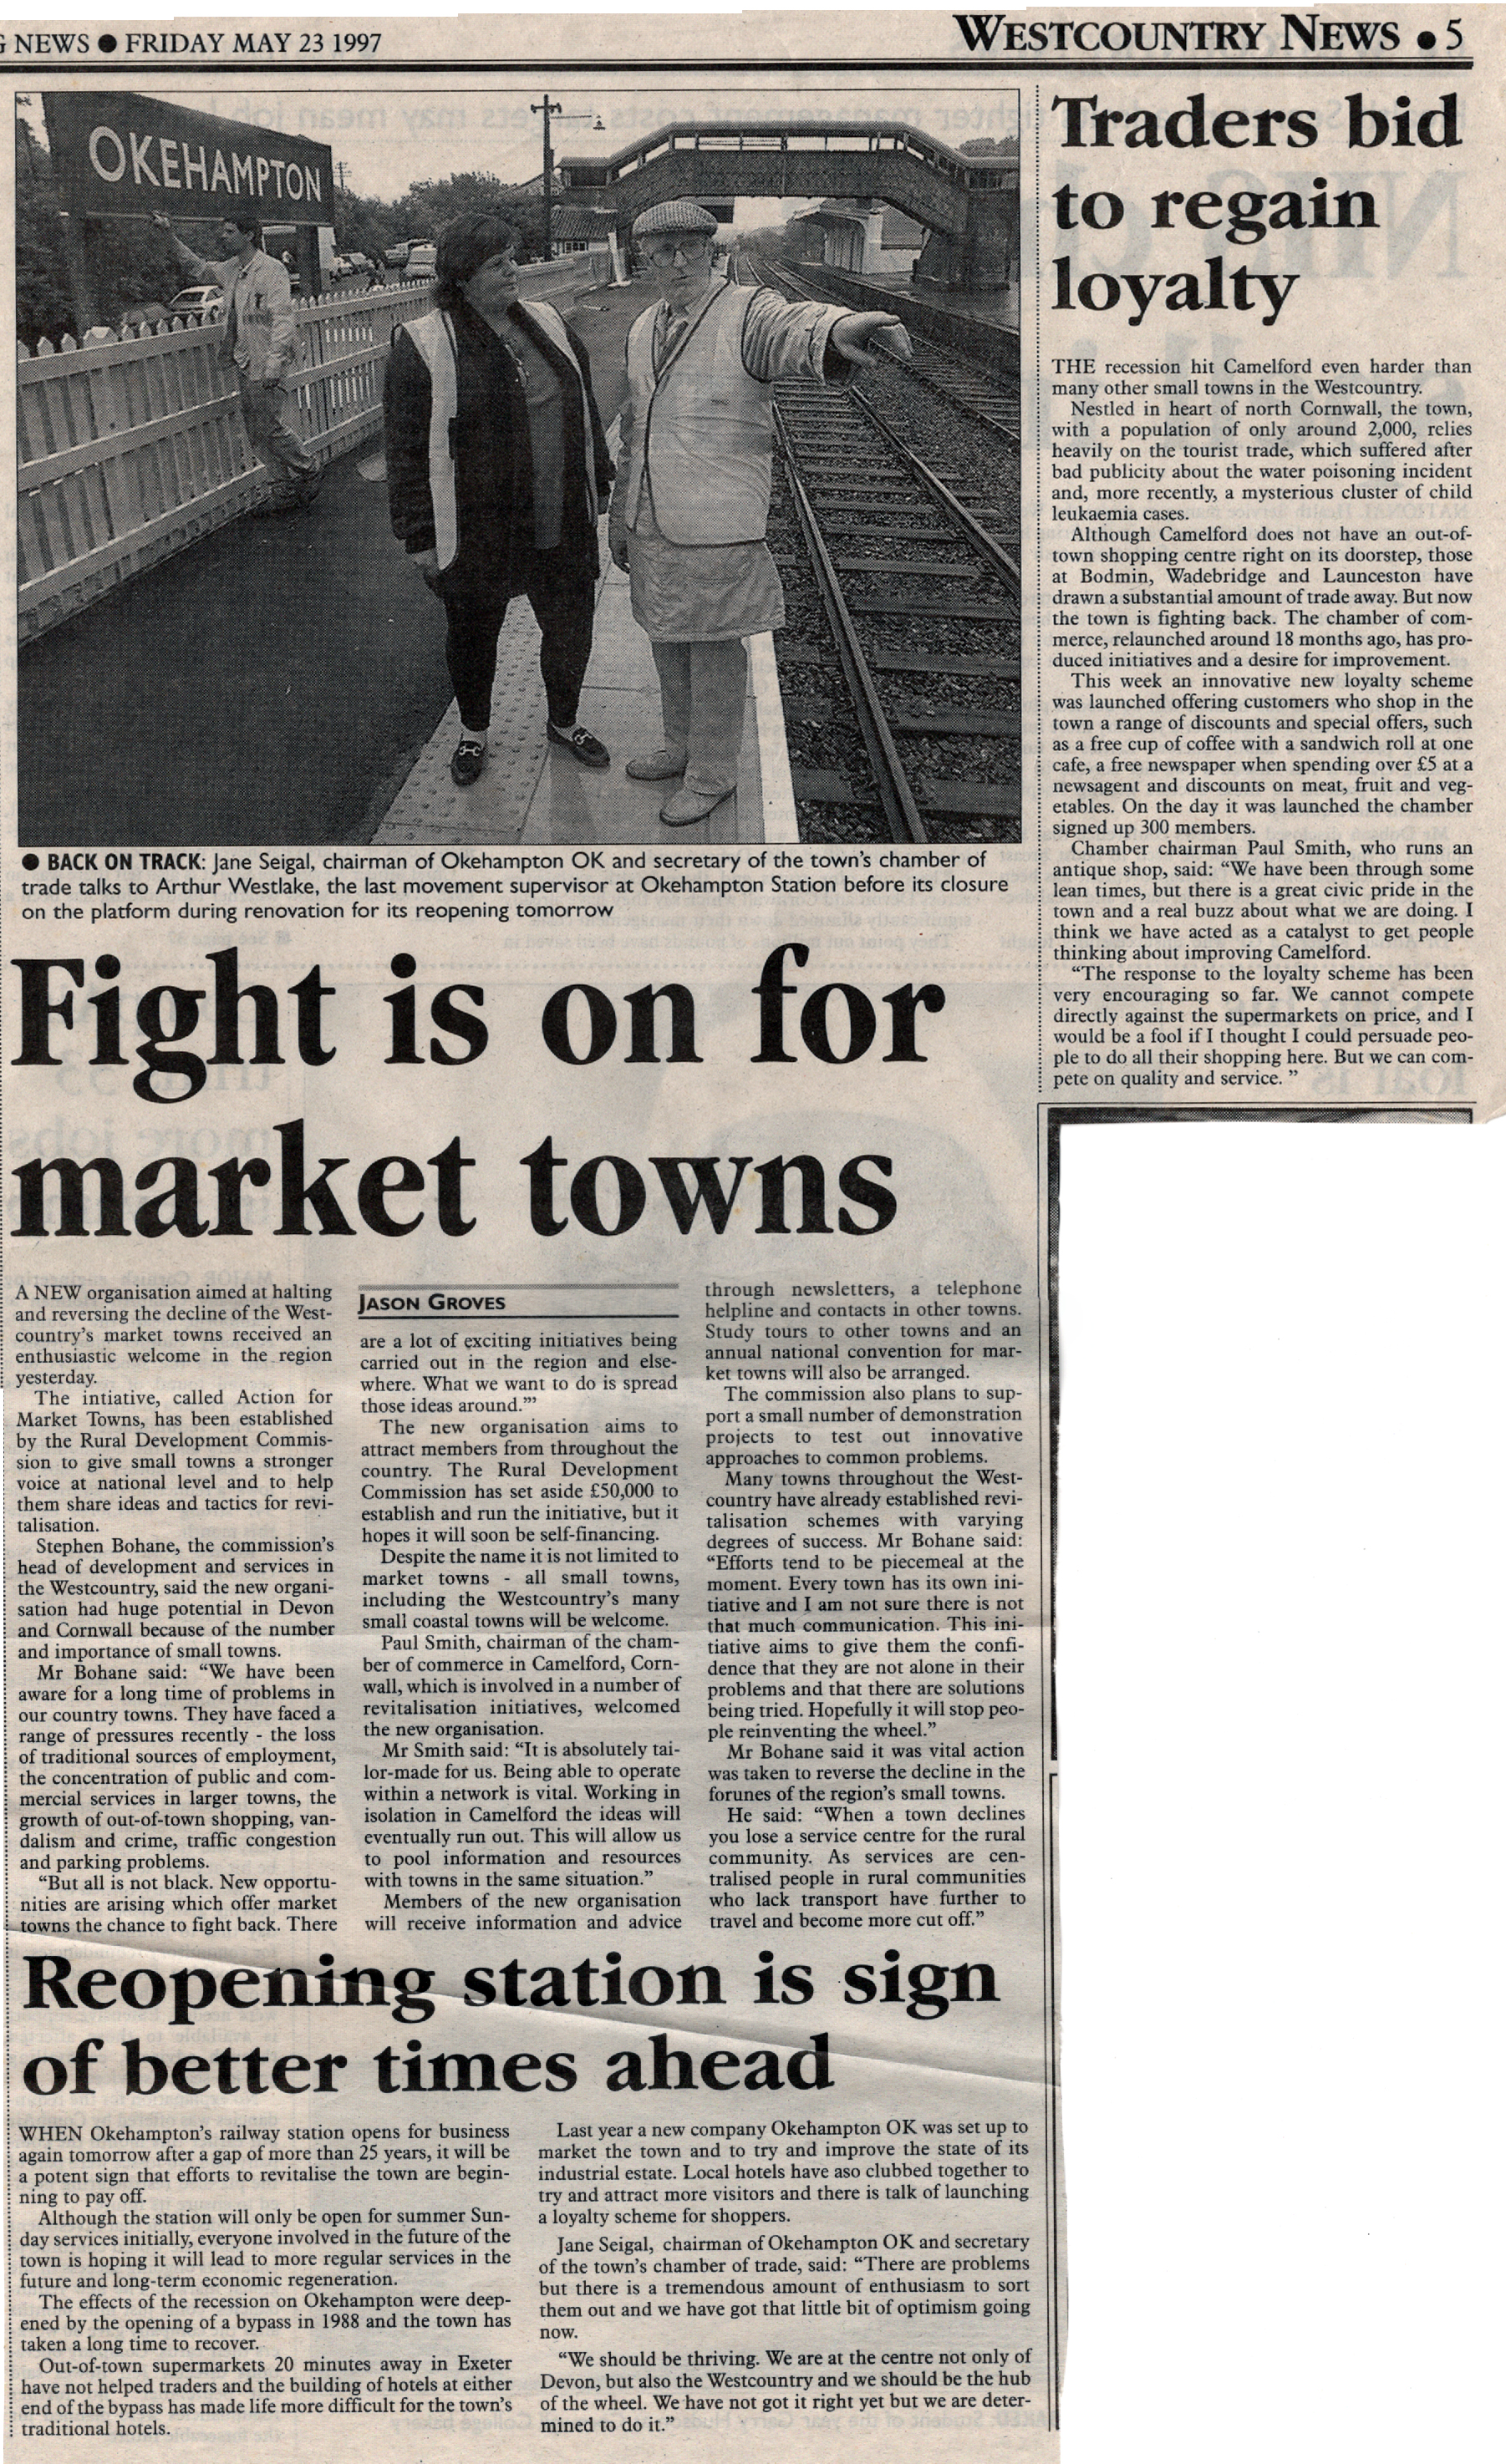 1997 article on the re-opening of Okehampton Station.